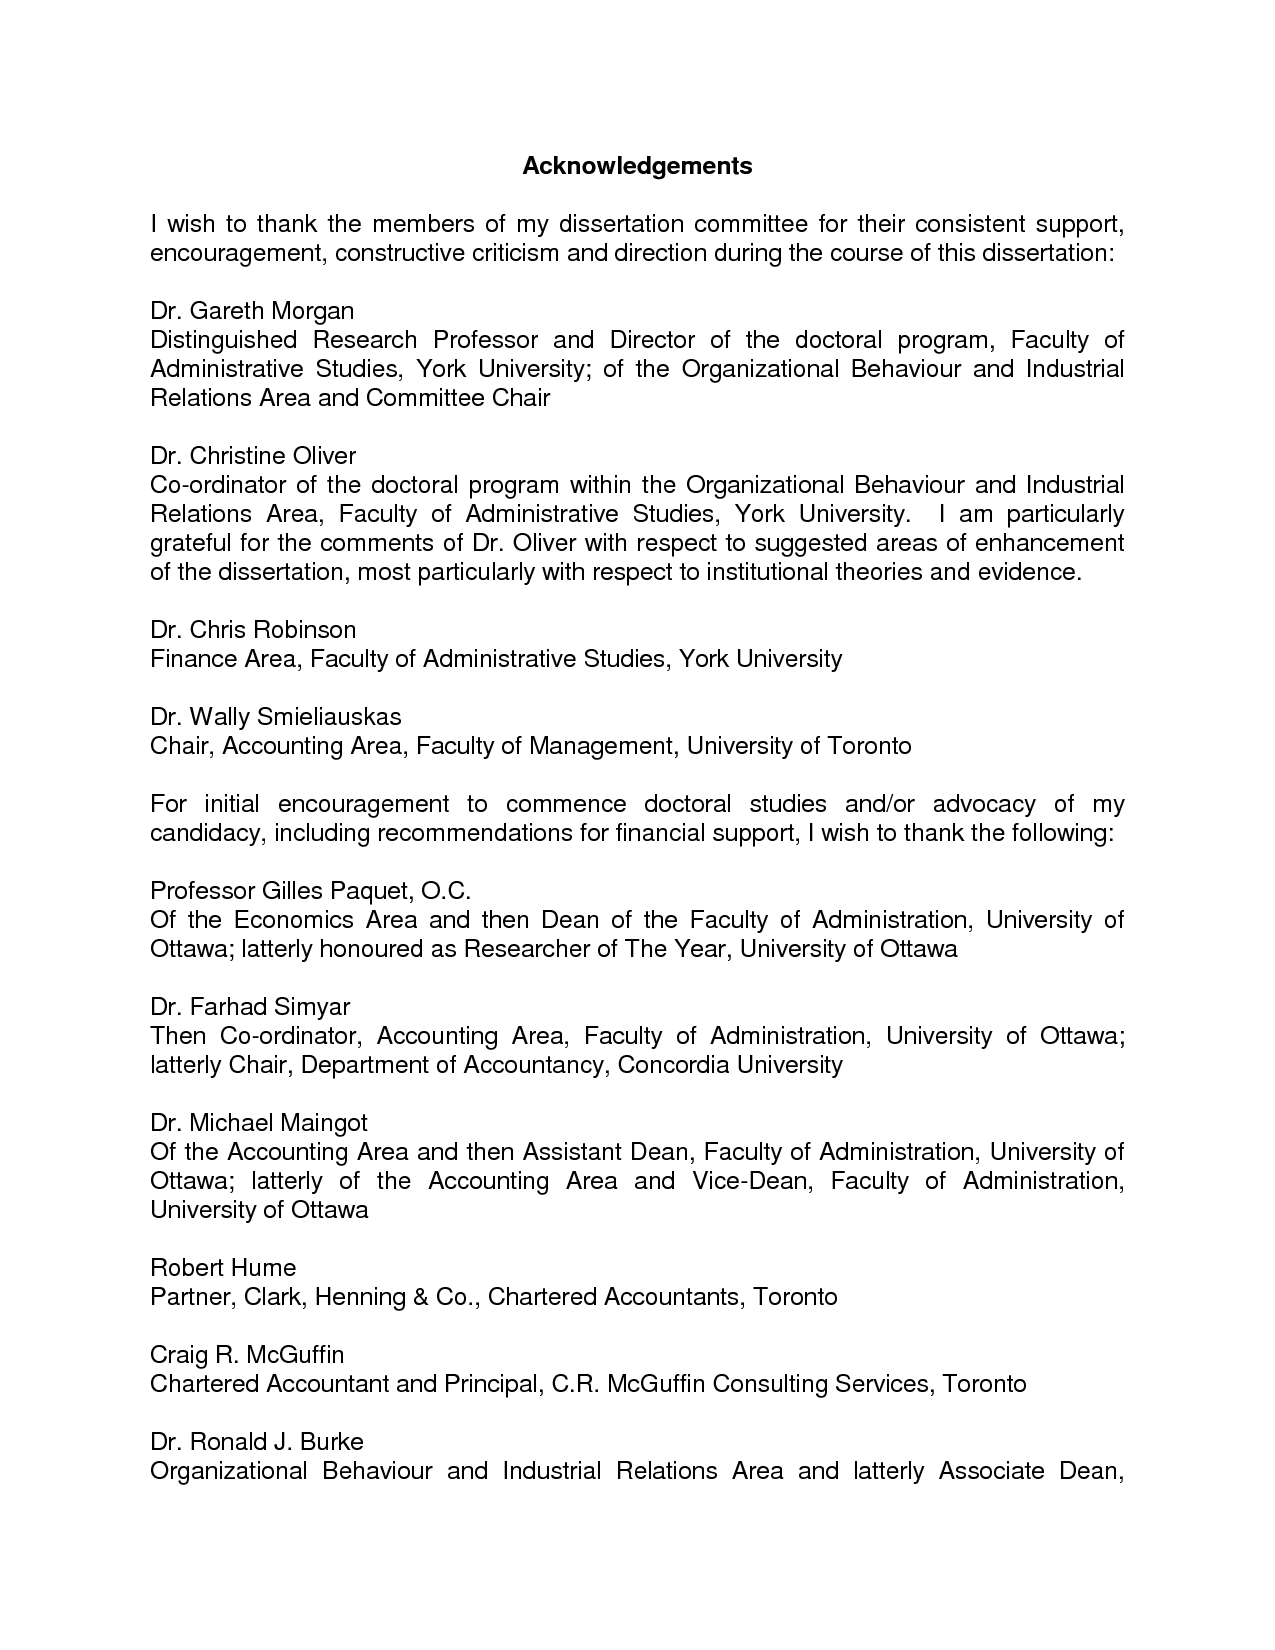 thesis aknowledgement Acknowledgements page for thesis or dissertation acknowledgements format the acknowledgements page is required for all theses and dissertations it follows the approval page, unless you have included the optional dedication page, in which case it follows the dedication page.